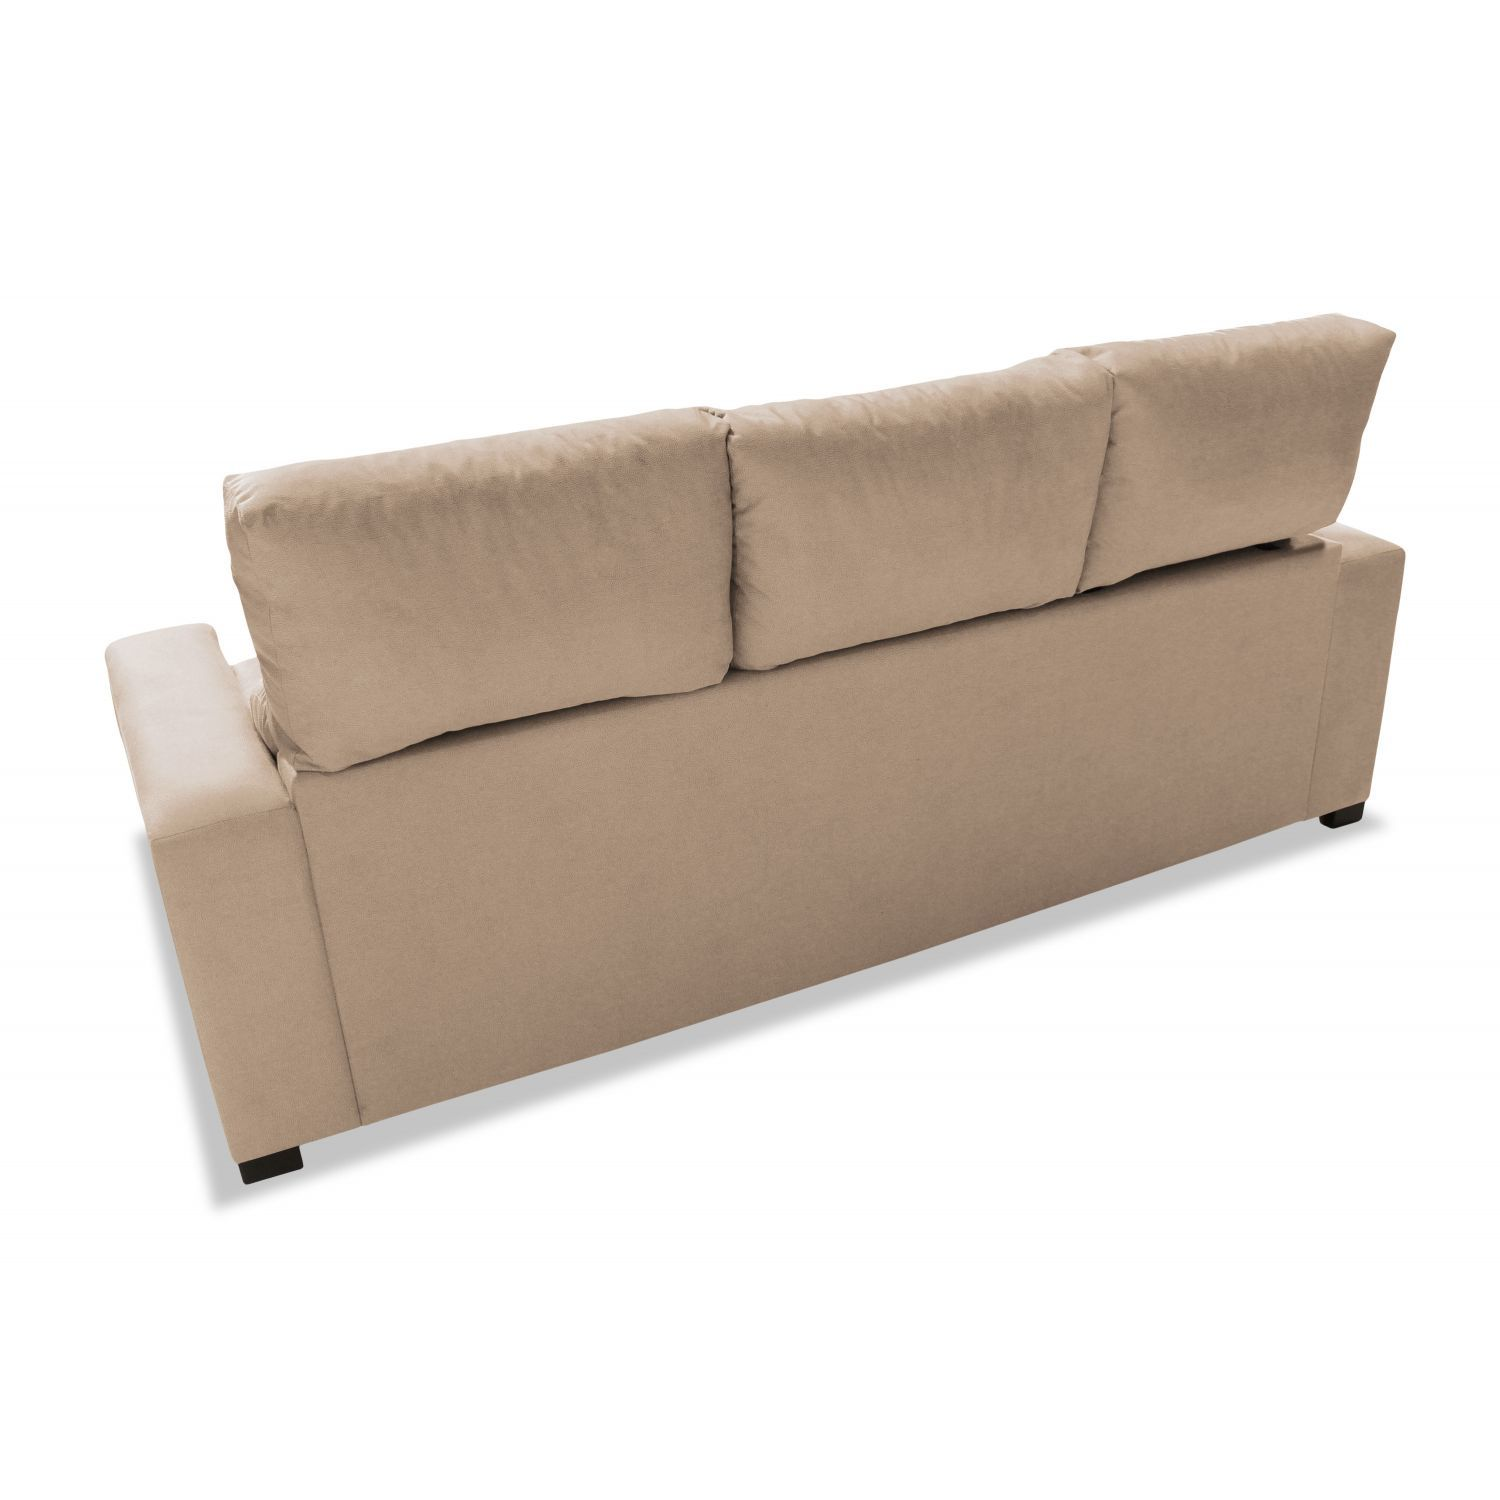 sofa clearance london next havana leather corner sofá 3 plazas reclinable extensible desenfundable